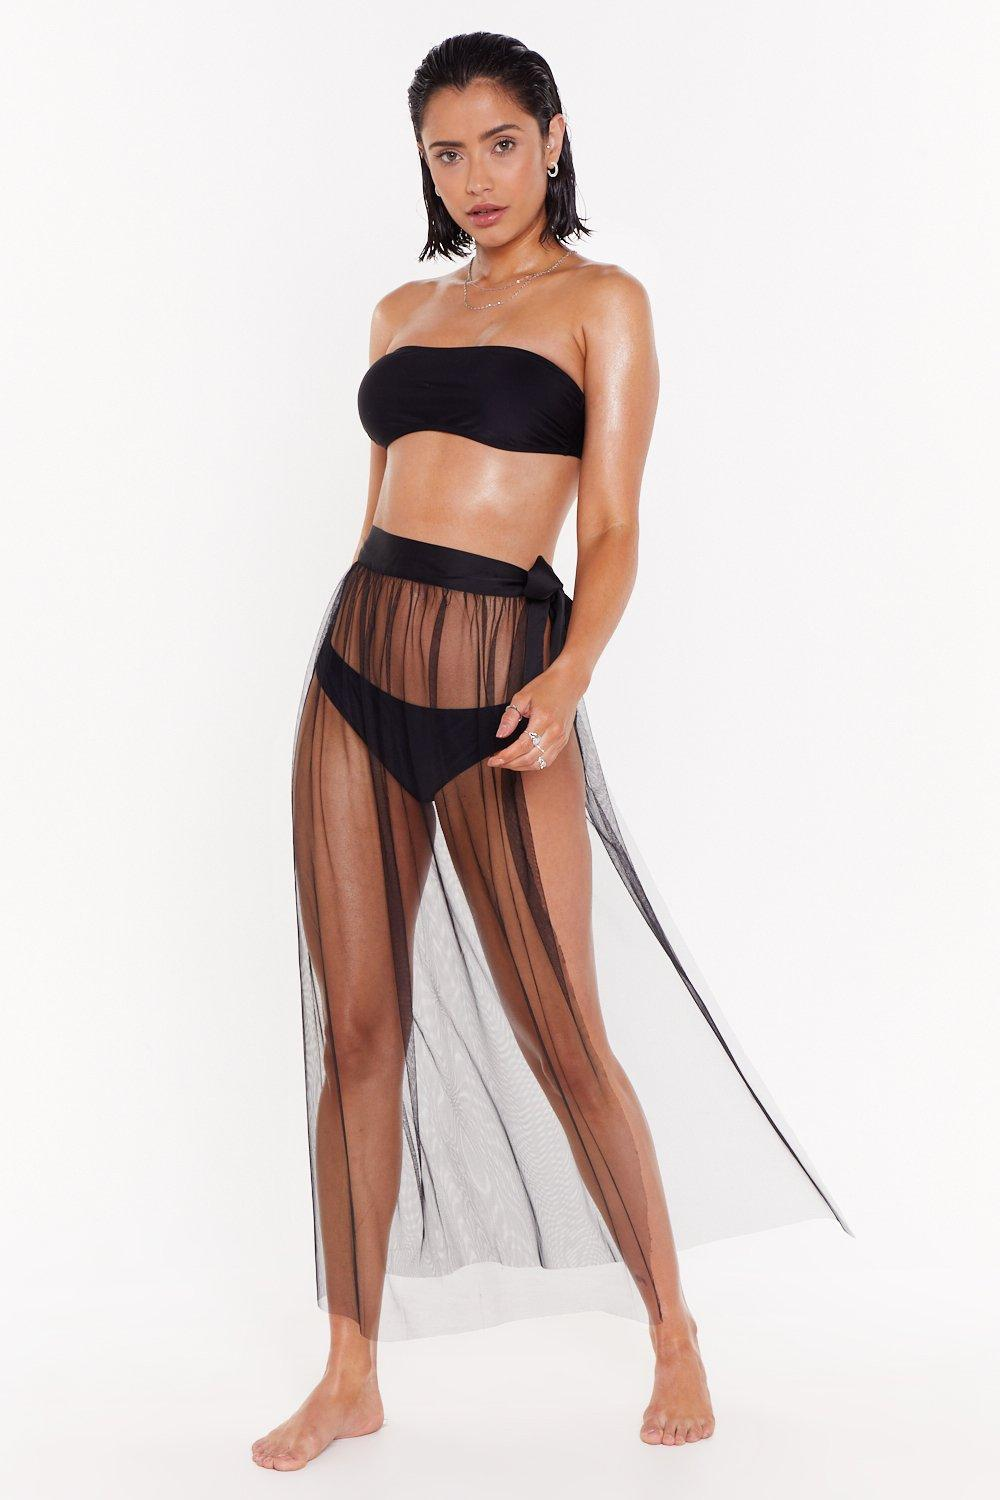 8cbde6017ffc0 Womens Black Ballerina Hits the Beach Mesh Cover-Up Skirt. Hover to zoom